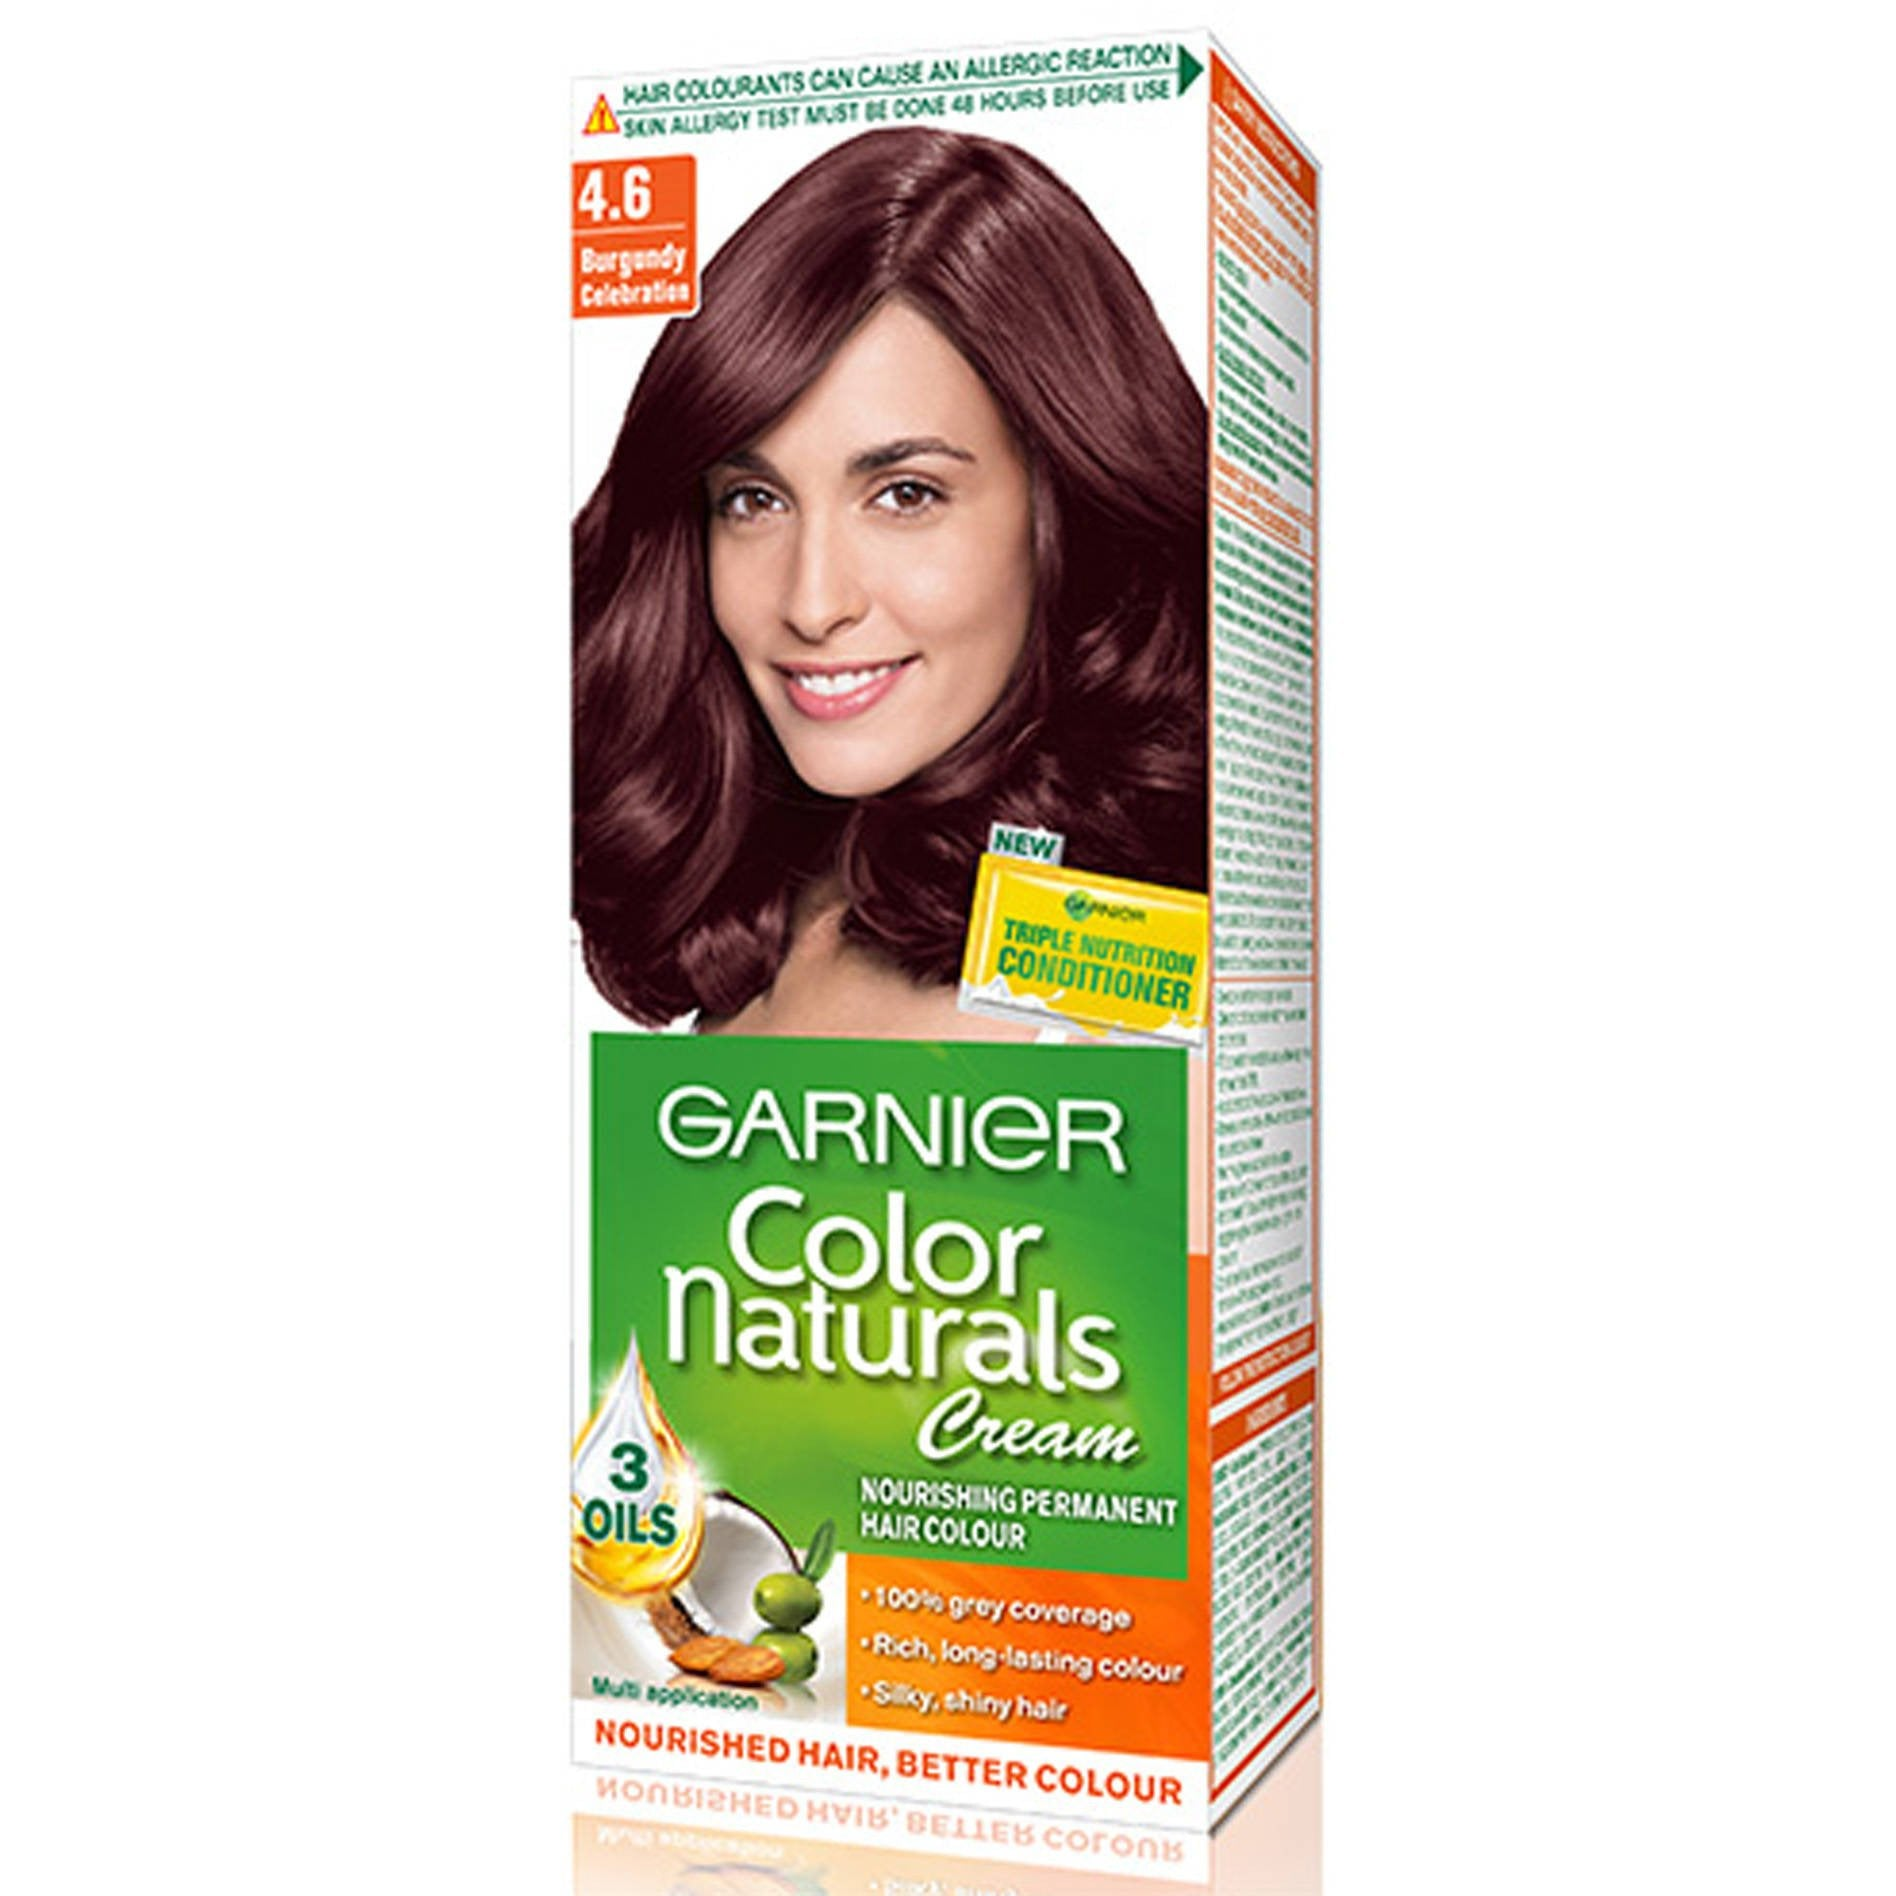 Refreshing Garnier Hair Color thoughts - Totaltravel.US